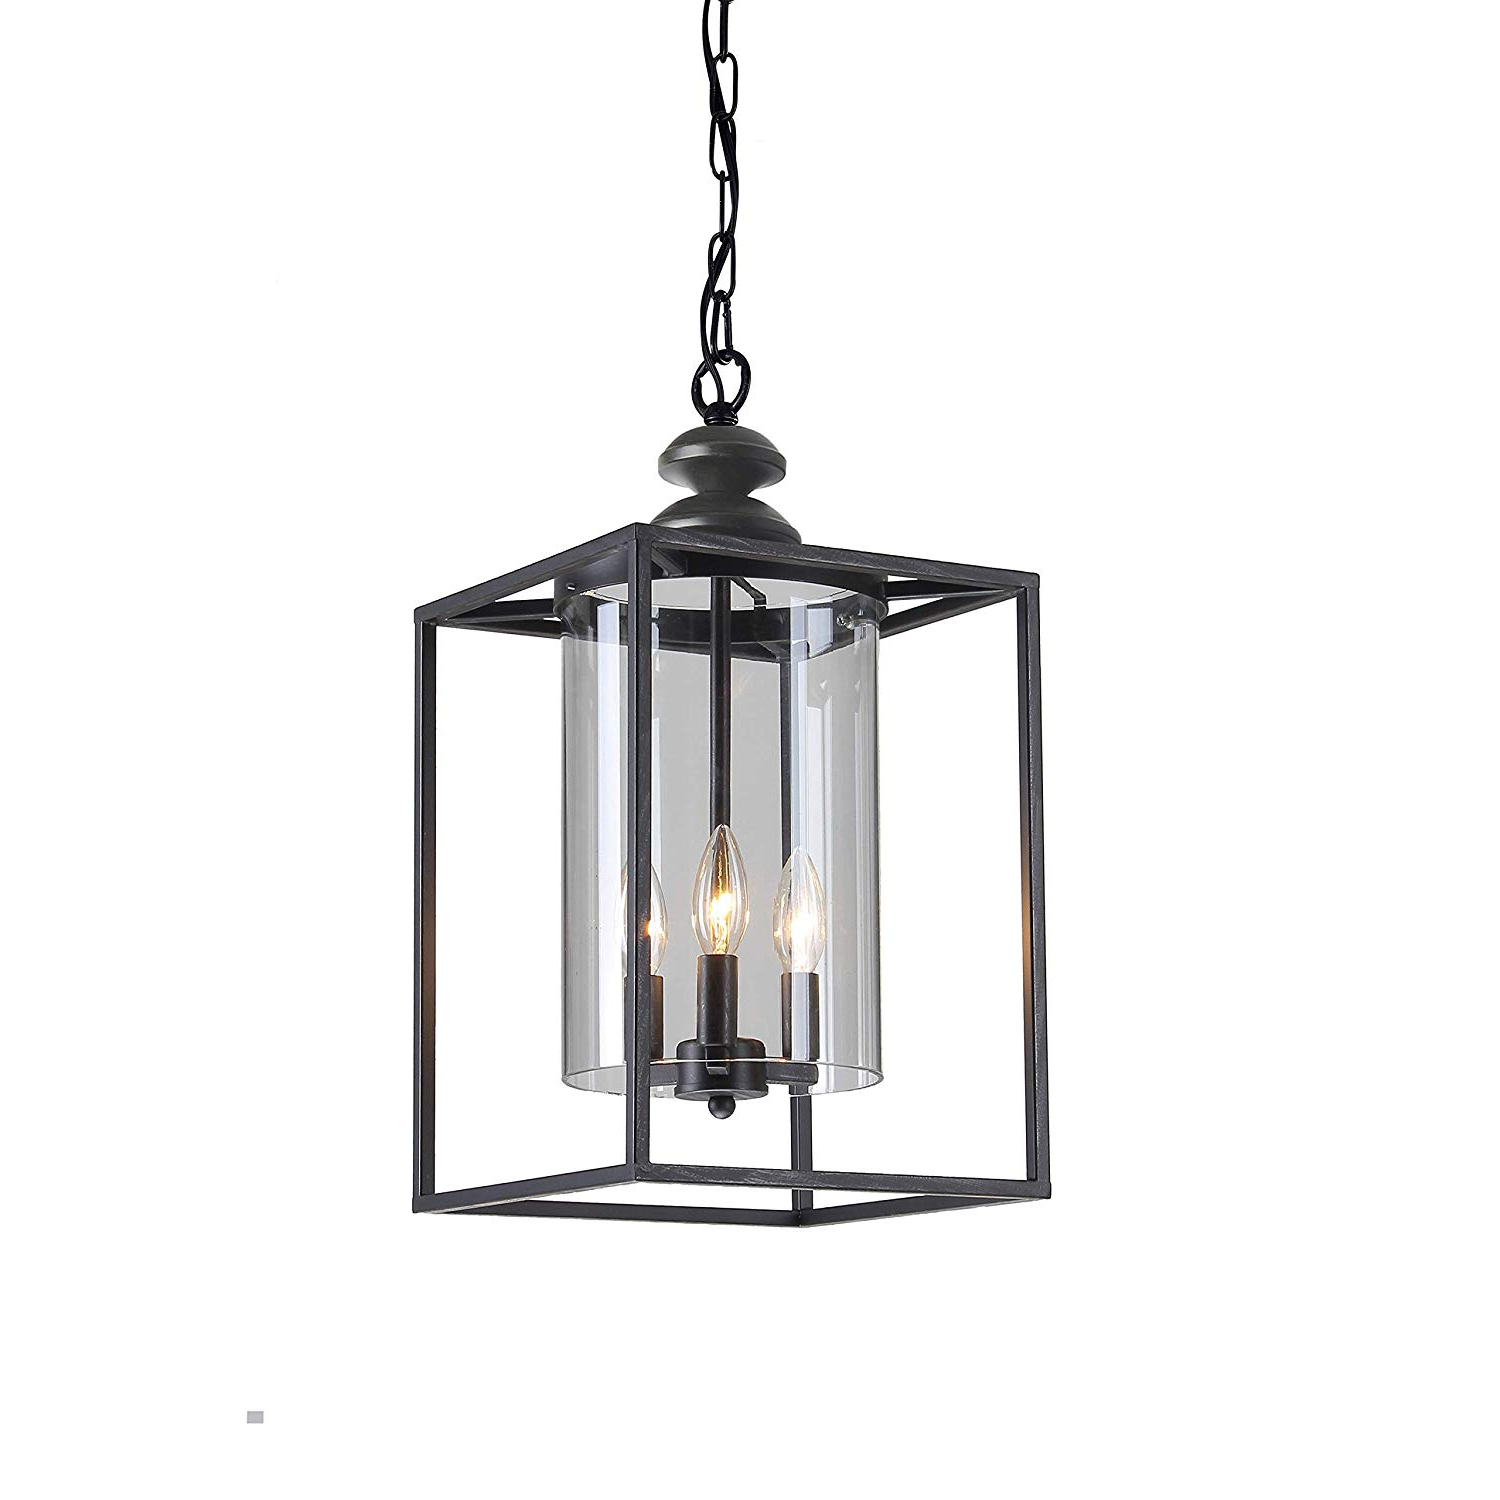 Most Popular La Barge 3 Light Globe Chandeliers Within Jojospring La Pedriza Antique Black 3 Light Glass And Metal Chandelier (View 13 of 25)